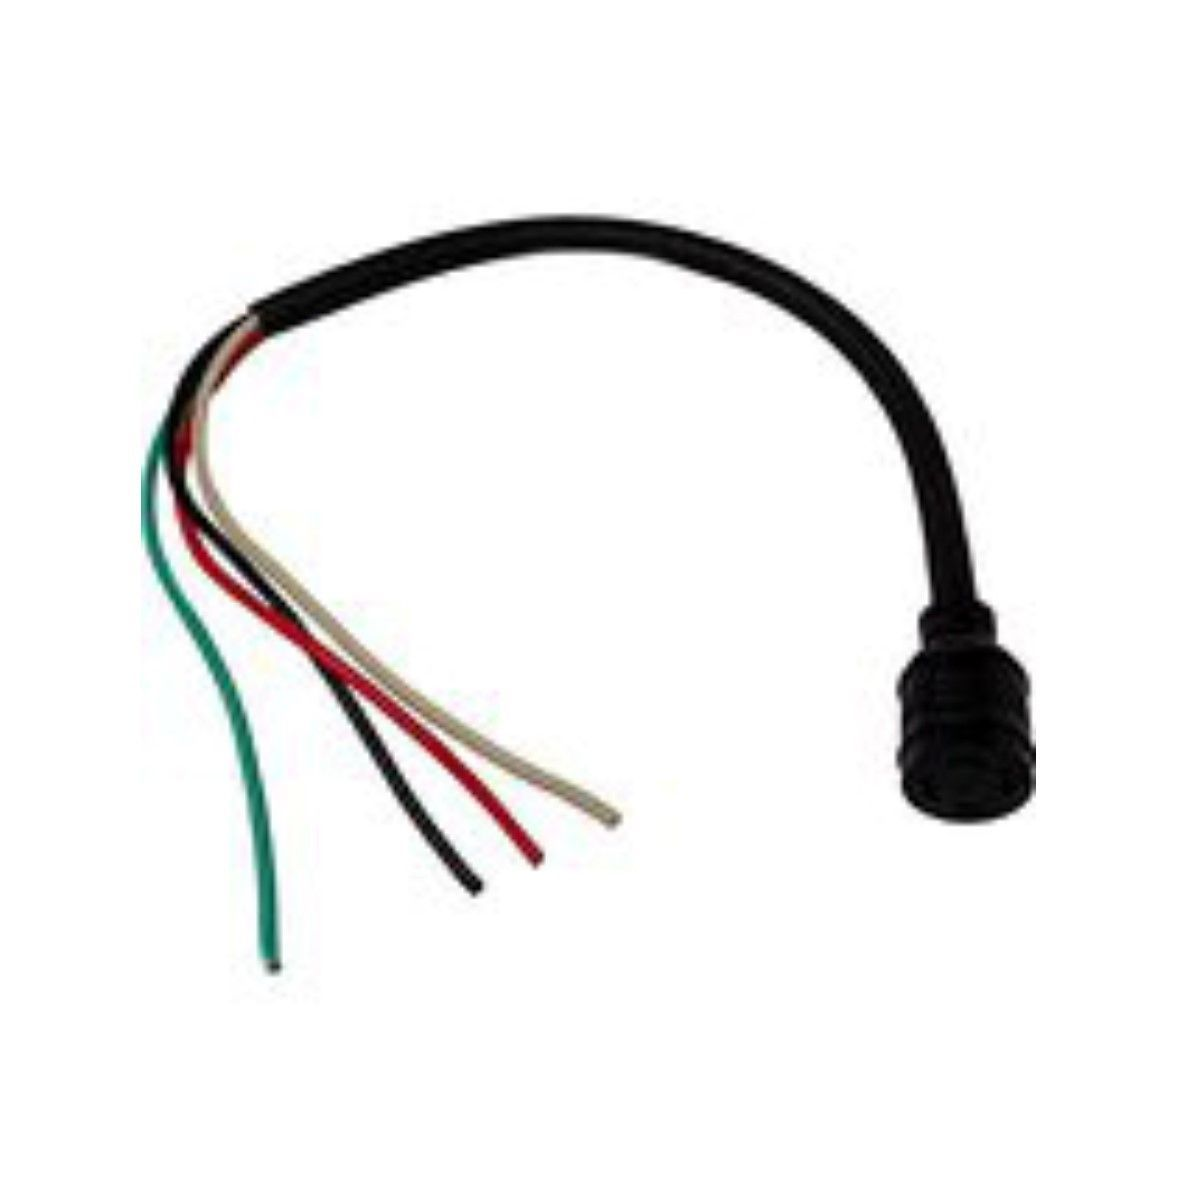 small resolution of hard wire panel adapter electrical breakers breaker box extension cord plugs wire